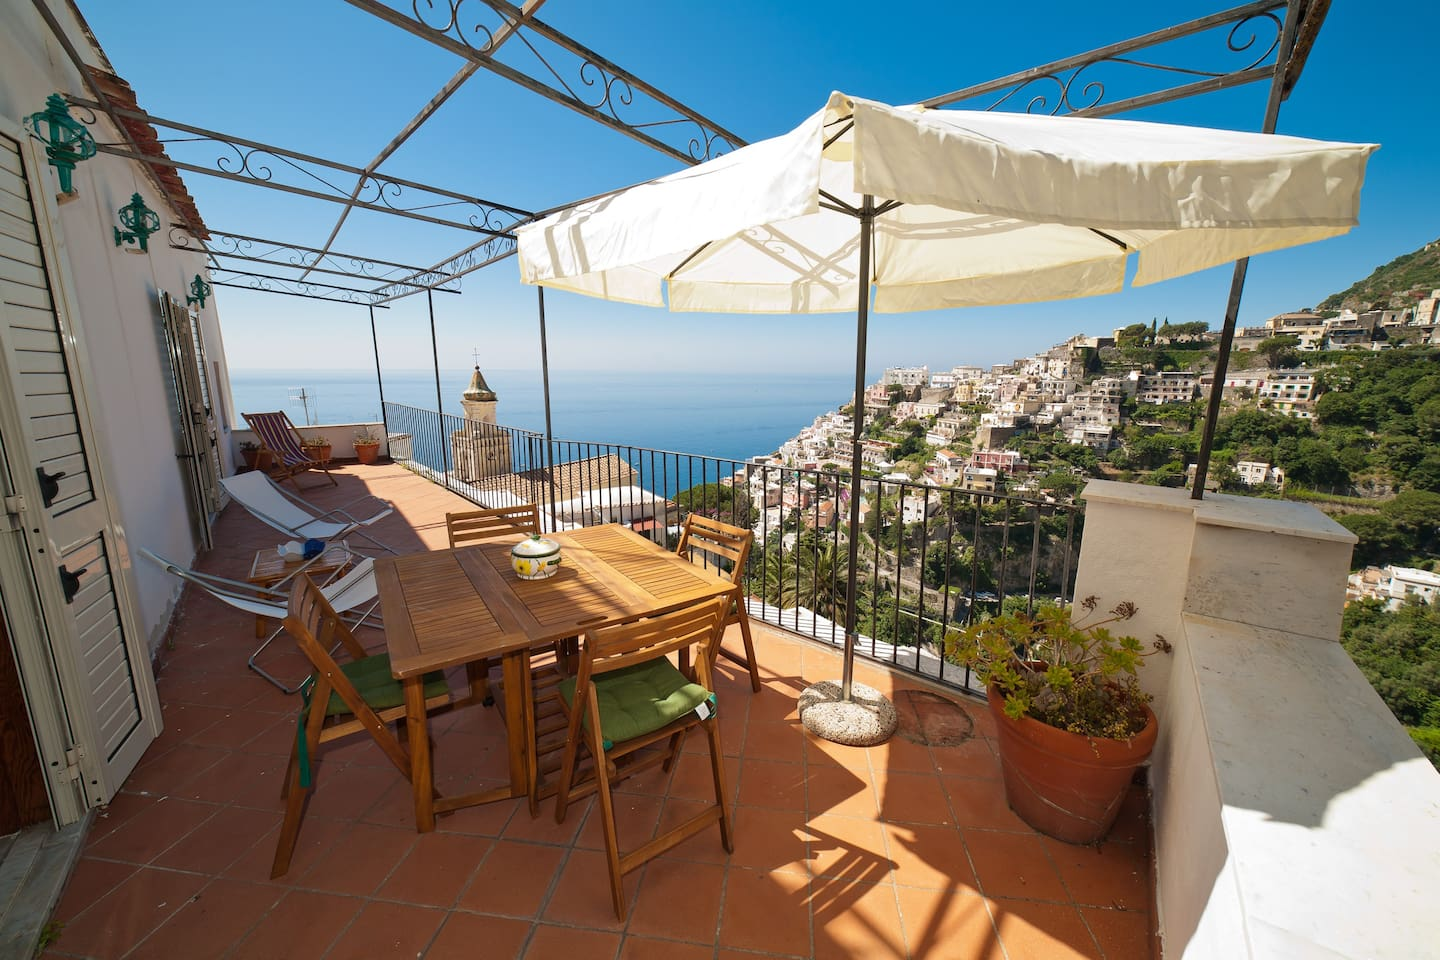 Your holiday home in Positano, the heart of Amalfi Coast